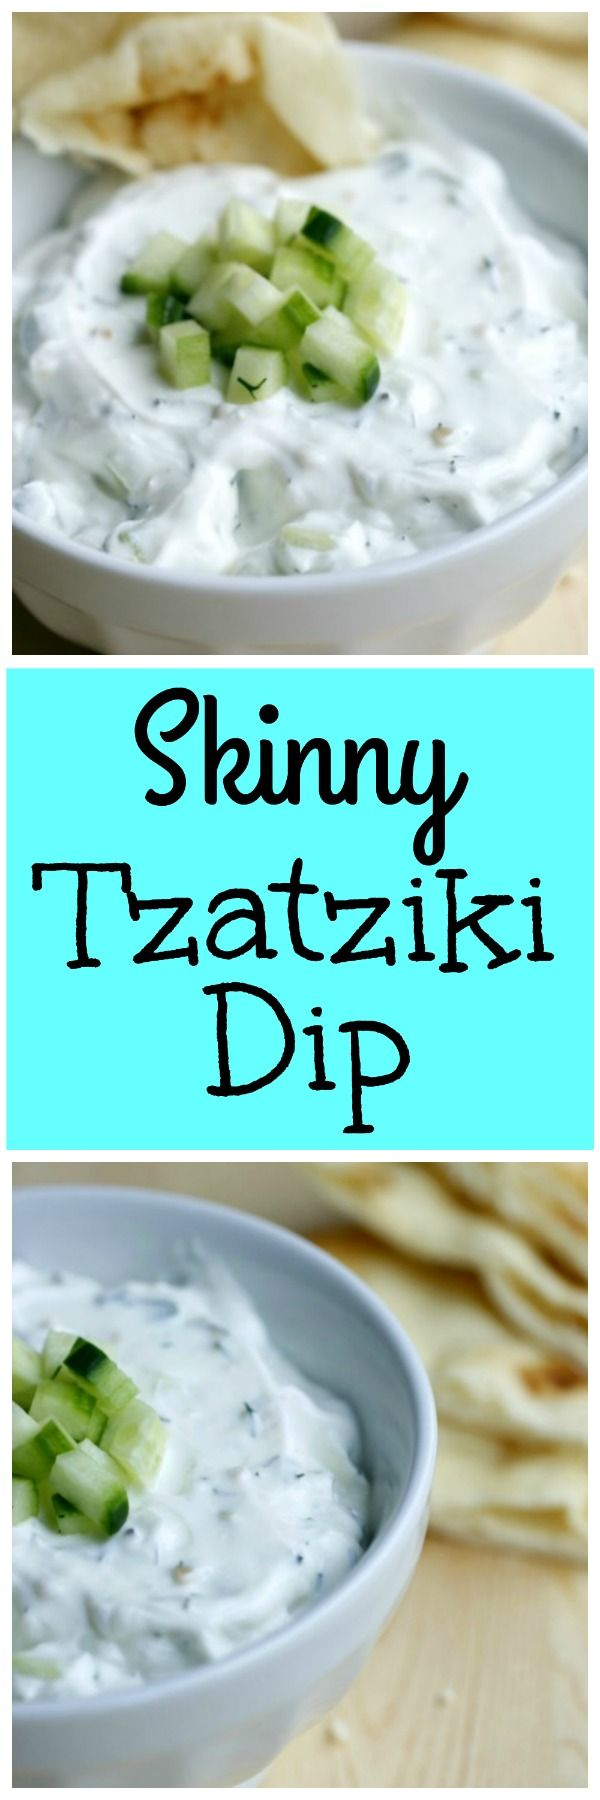 Skinny Tzatziki Dip. A fat free dip that's so creamy and delicious. 21 Day Fix approved.